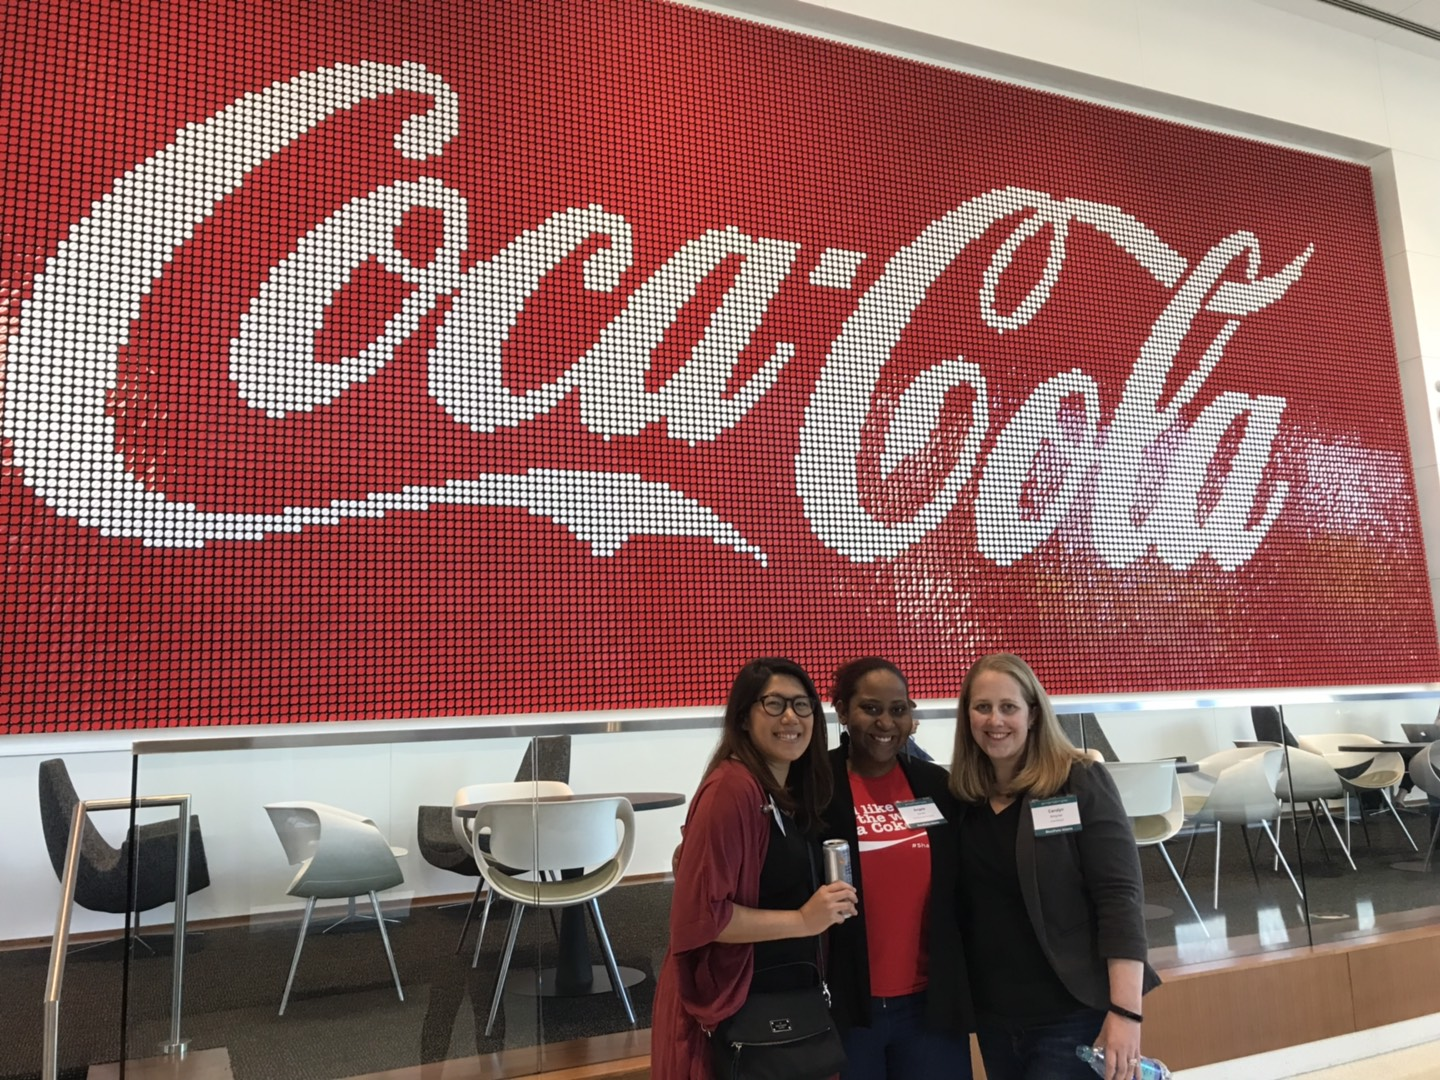 L-R Claudine Ting, Marketing Specialist for Client Sucess at SmartSimple, Angela Randle, Grant Administrator for the Coca-Cola Company Carolyn Bringman, Regional Manager for SmartSimple